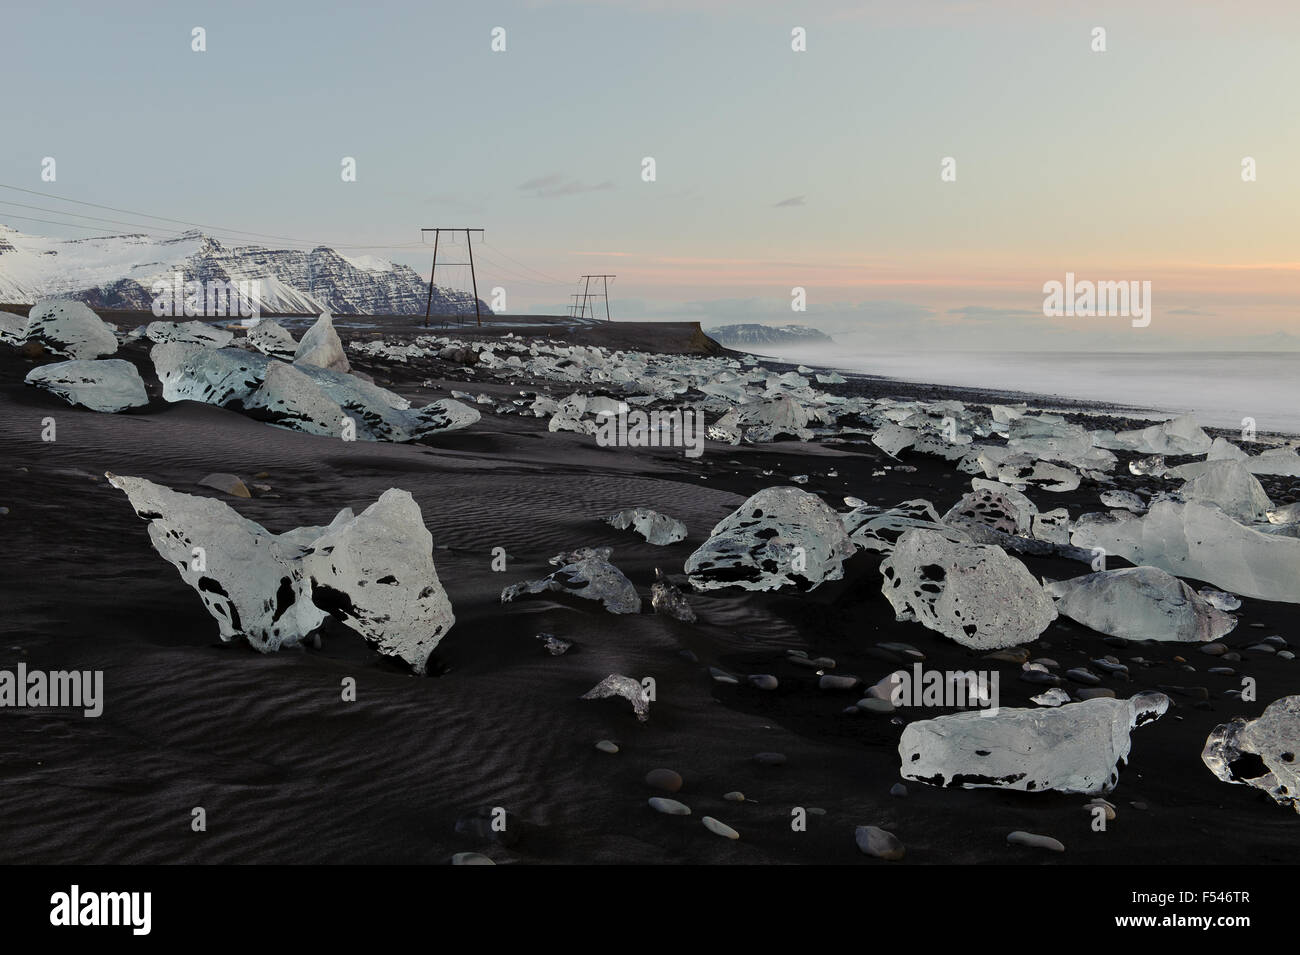 Ice bergs washed up on the black sand beach of Breiðamerkursandur, on the south coast of Iceland. - Stock Image